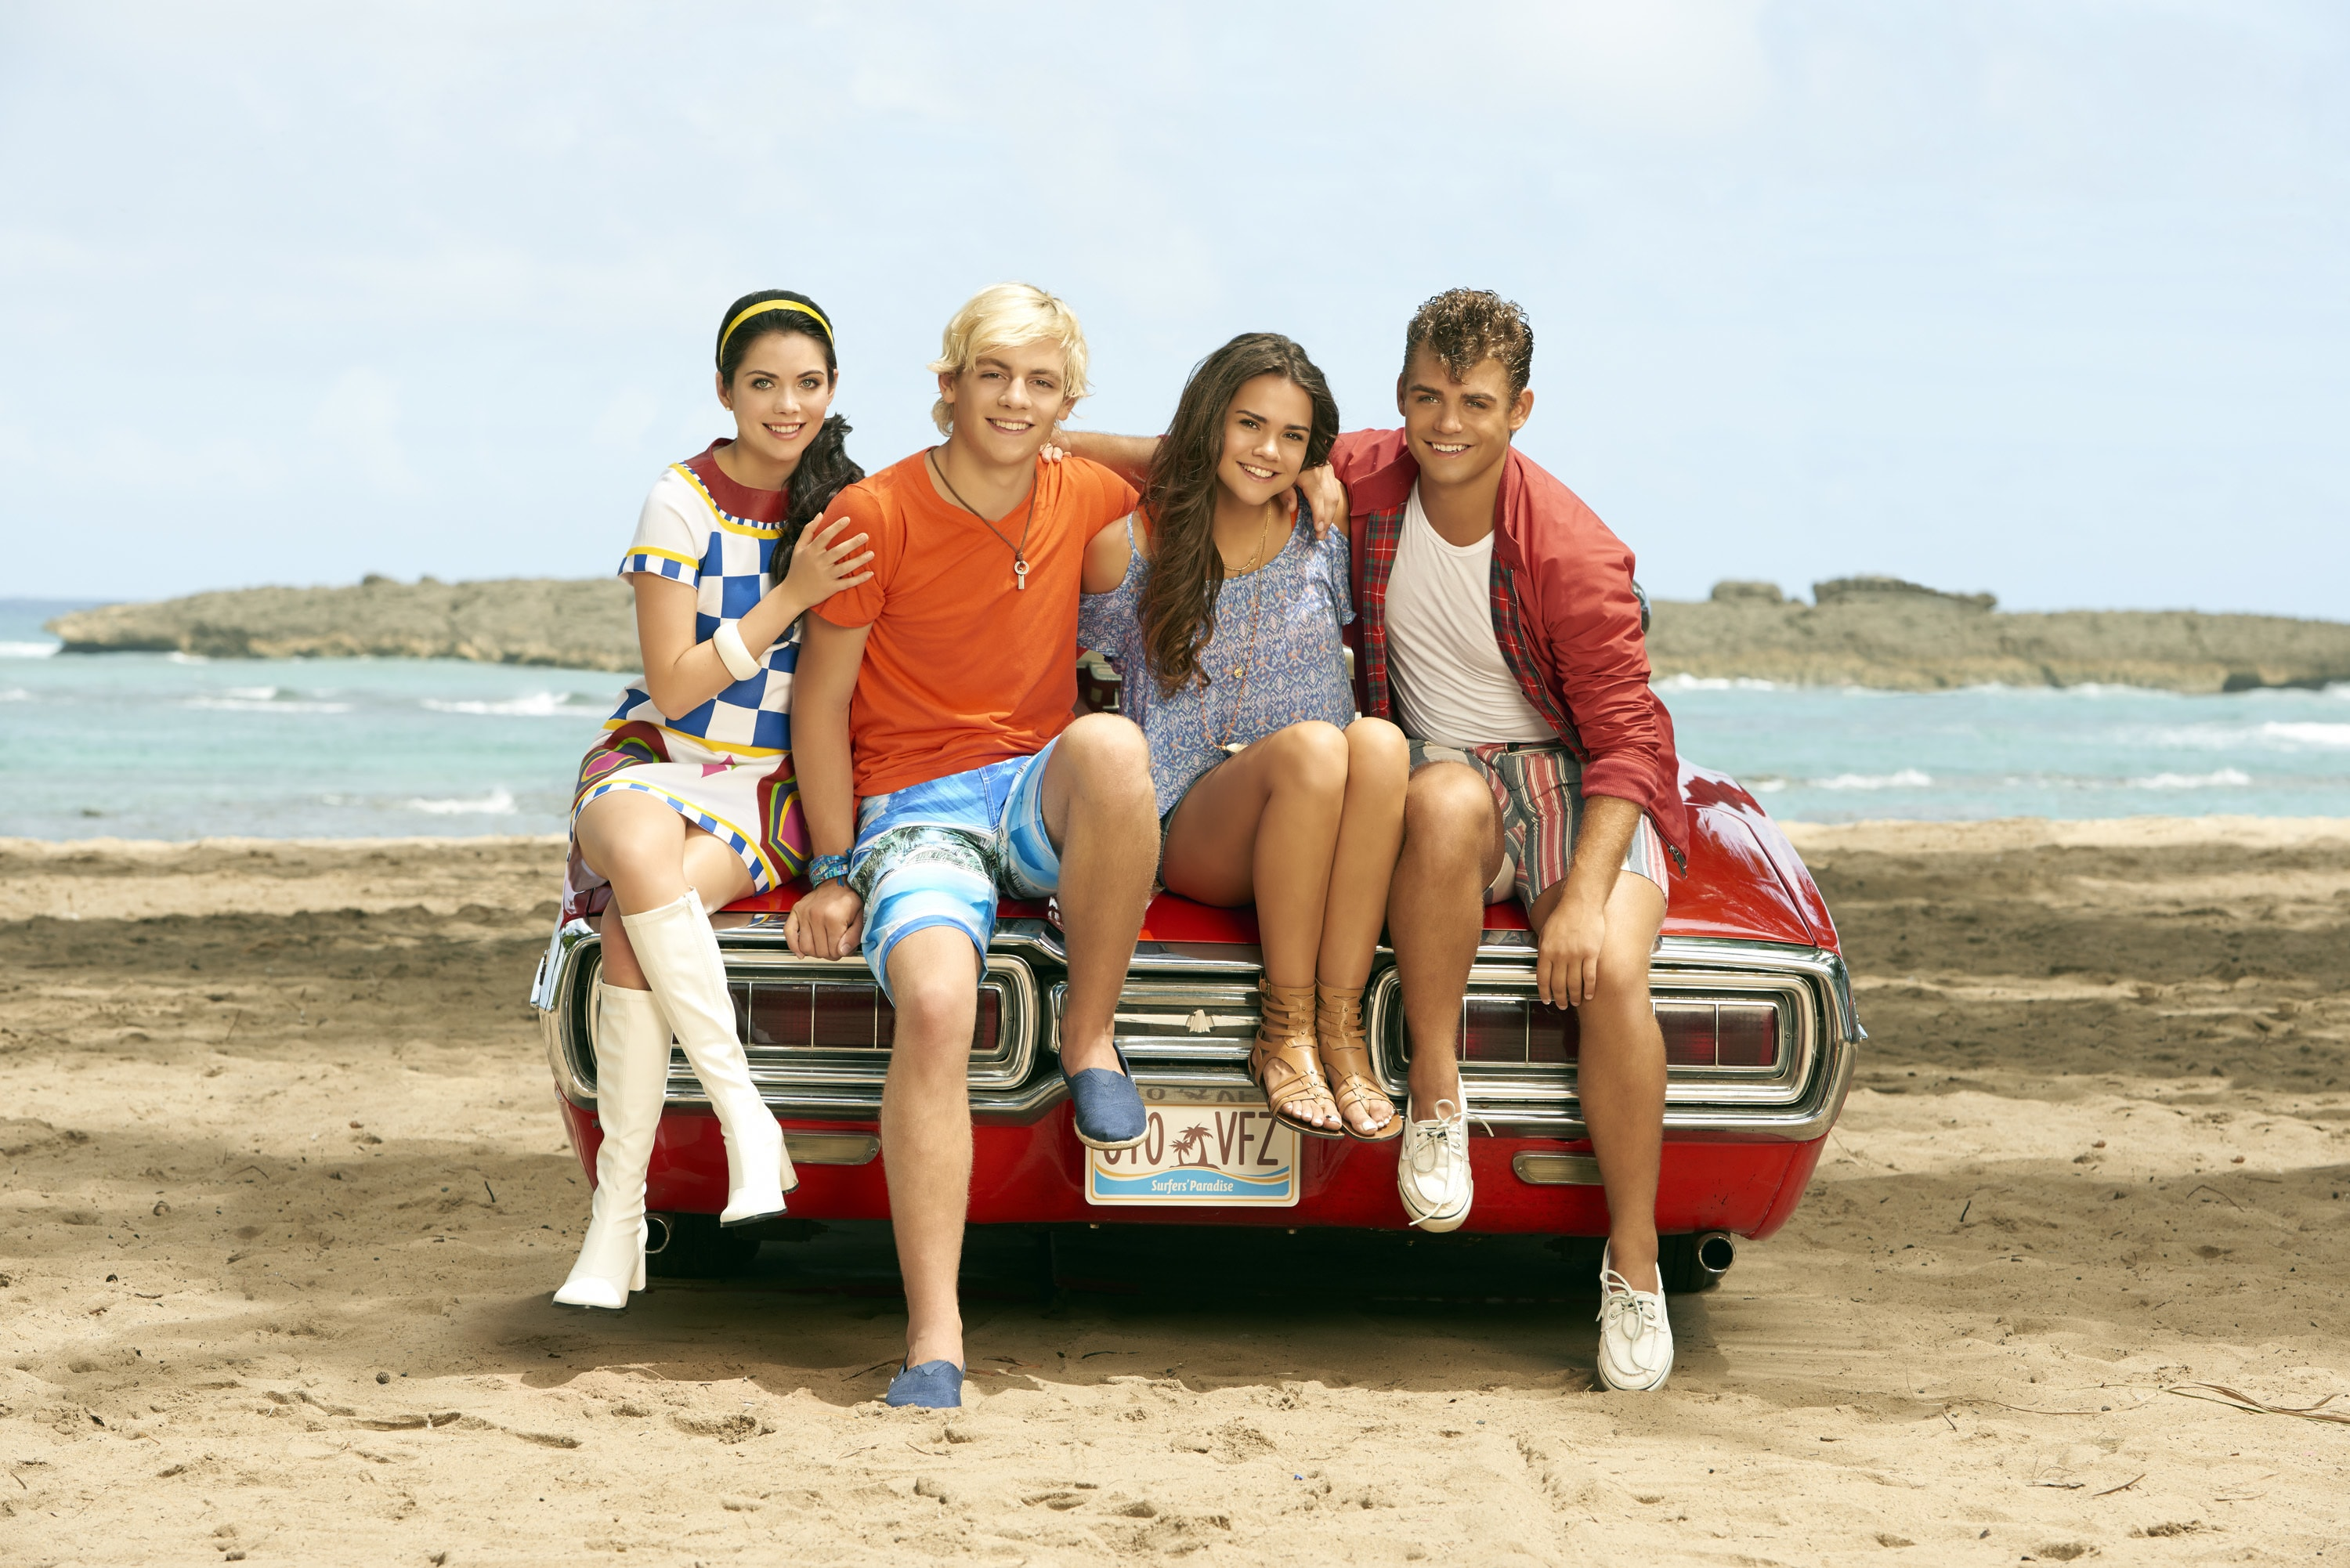 Teen Beach 2 Gallery